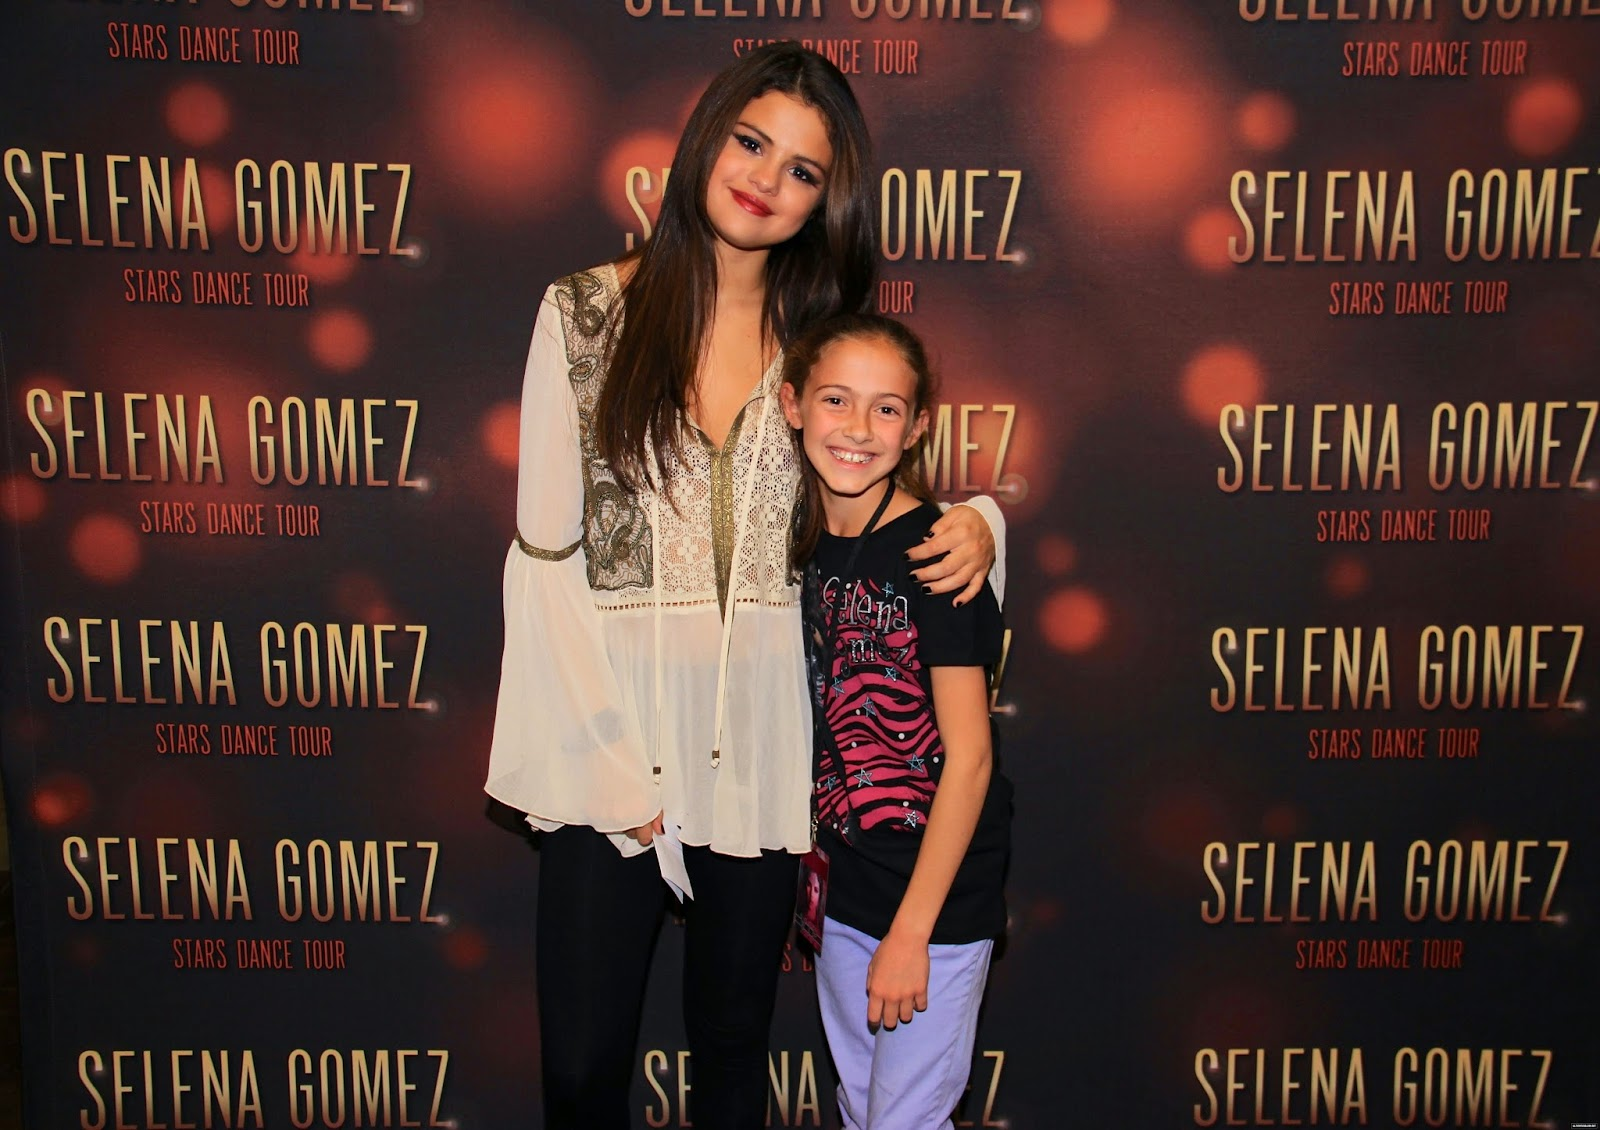 Selena gomez style stars dance world tour meet greet salt lake stars dance world tour meet greet salt lake city utah nov 14 2013 m4hsunfo